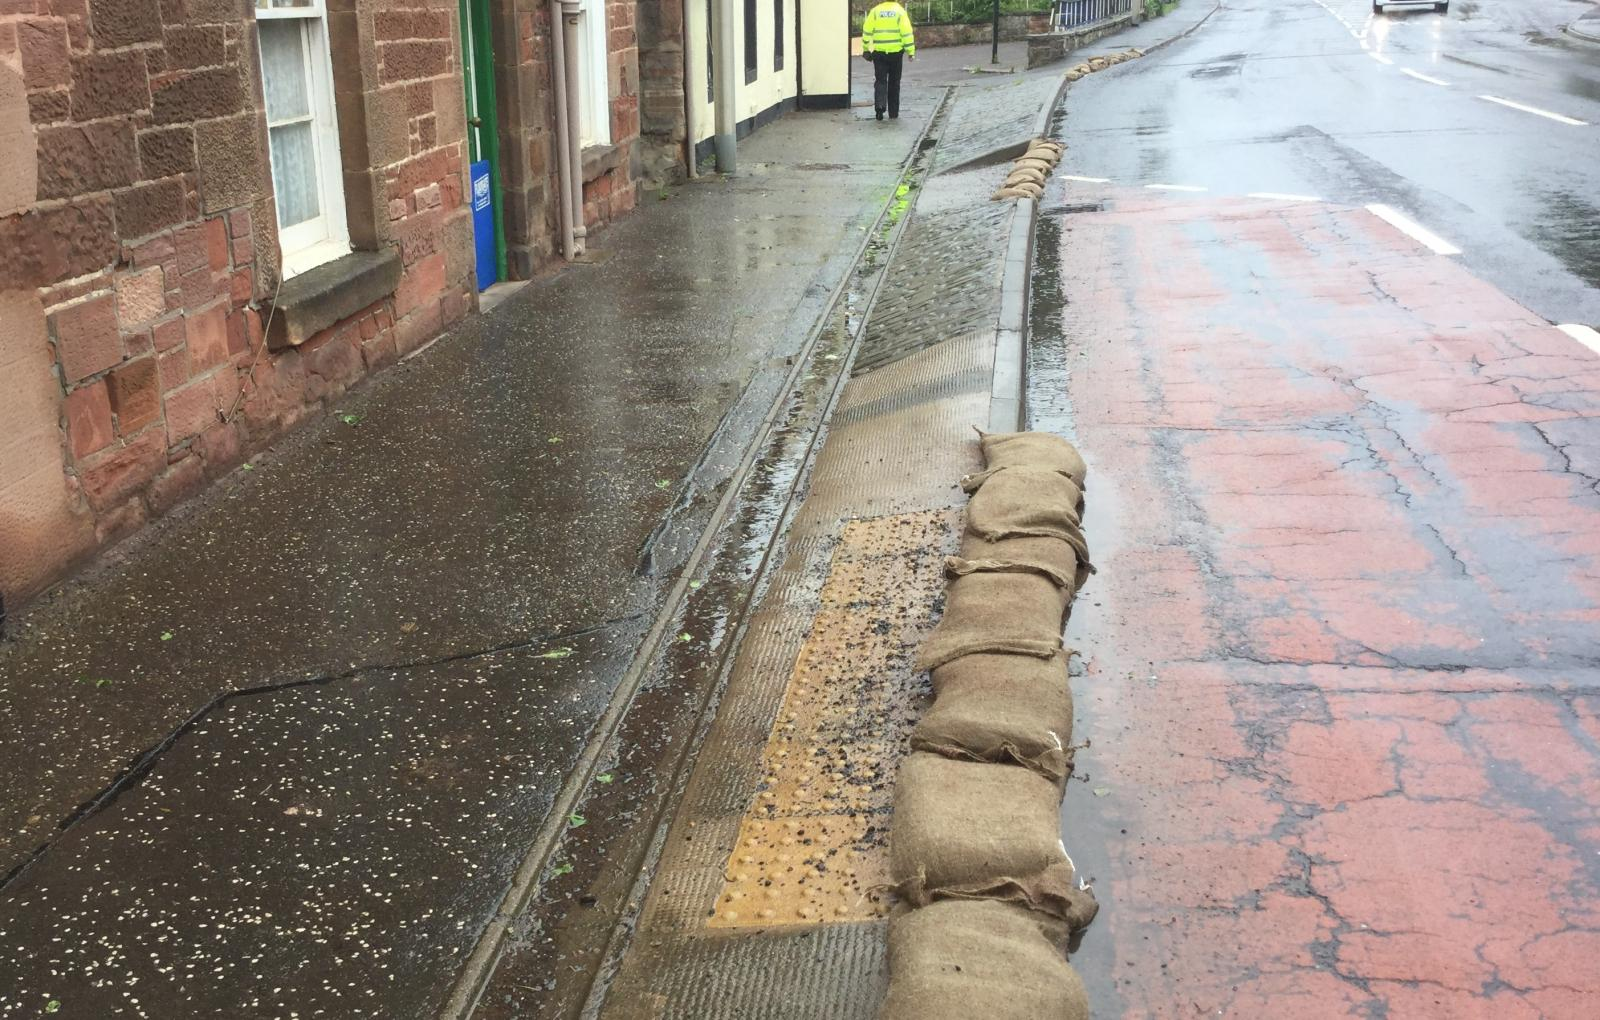 Sandbags and floodgate in use flooded road